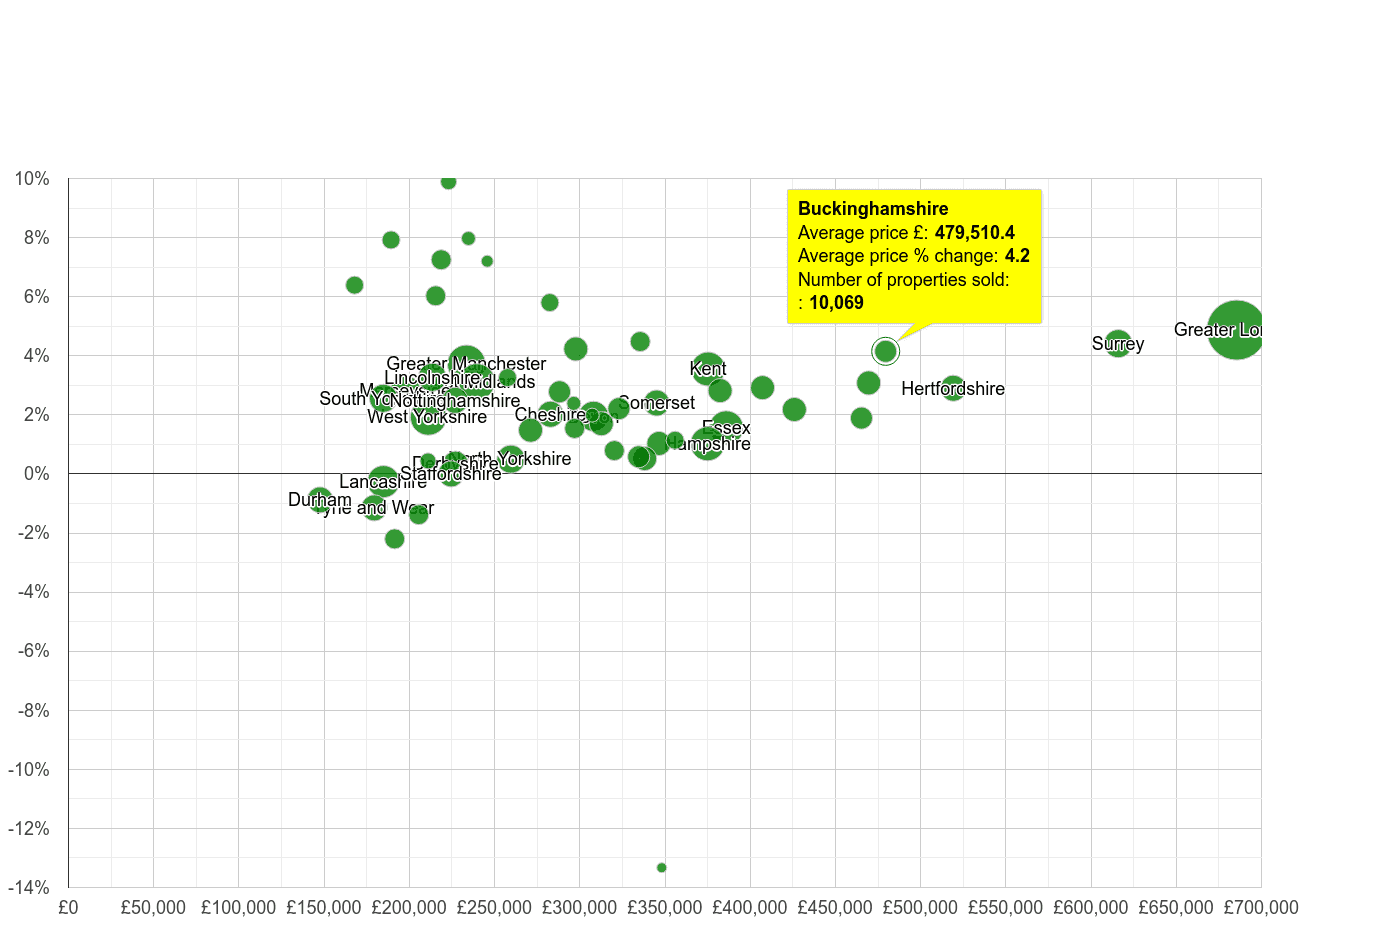 Buckinghamshire house prices compared to other counties